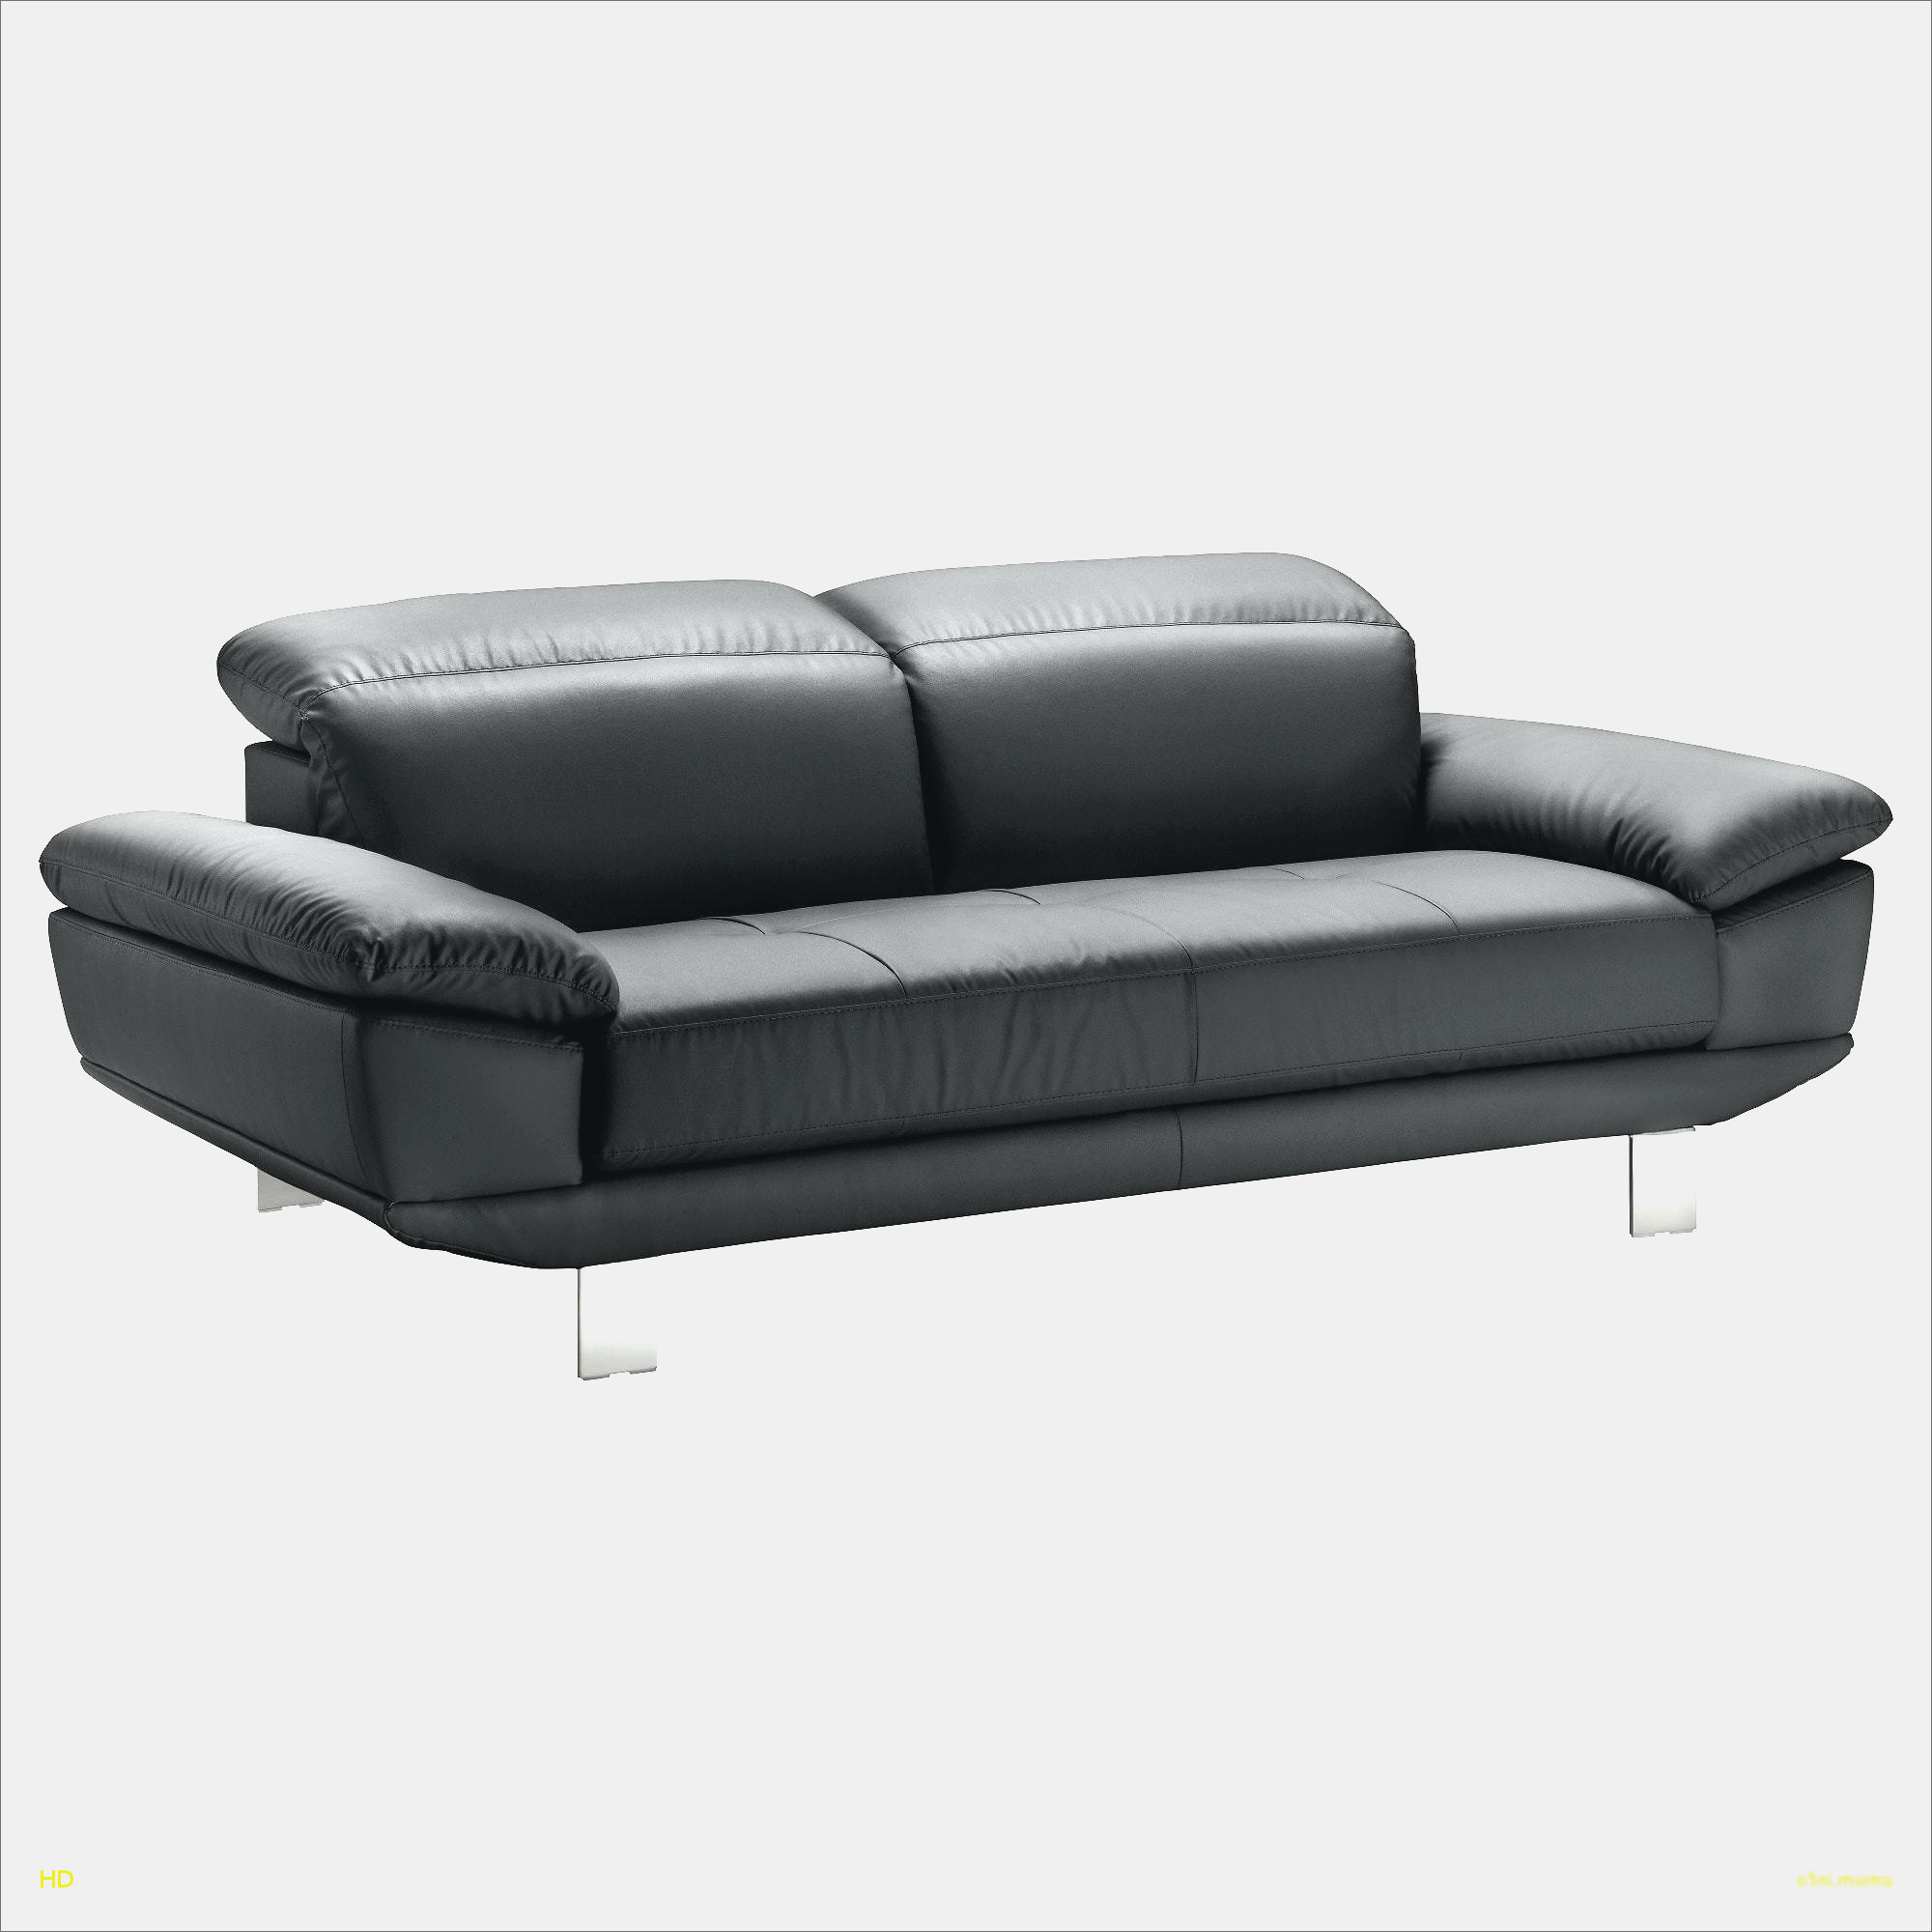 Ikea Canapé Relax Luxe Stock Canapé D Angle Xxl Centralillaw